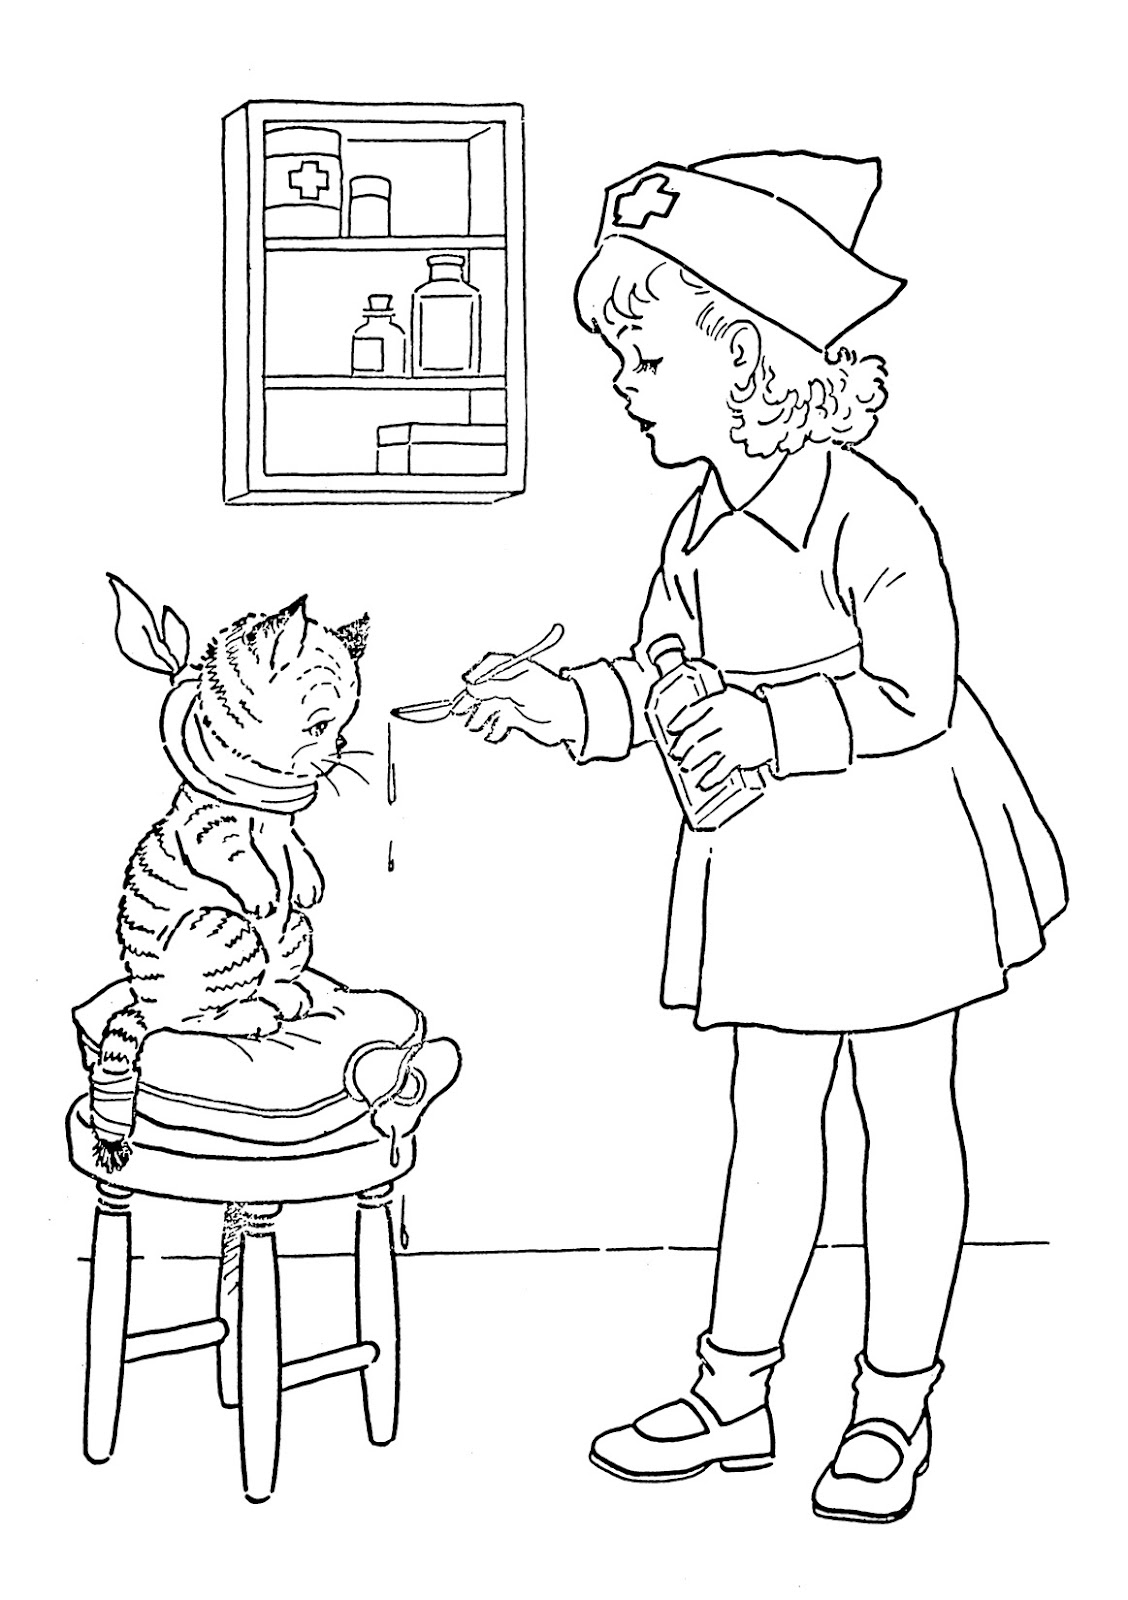 Kids Vintage Printable - Coloring Page - Lil Nurse - The Graphics Fairy